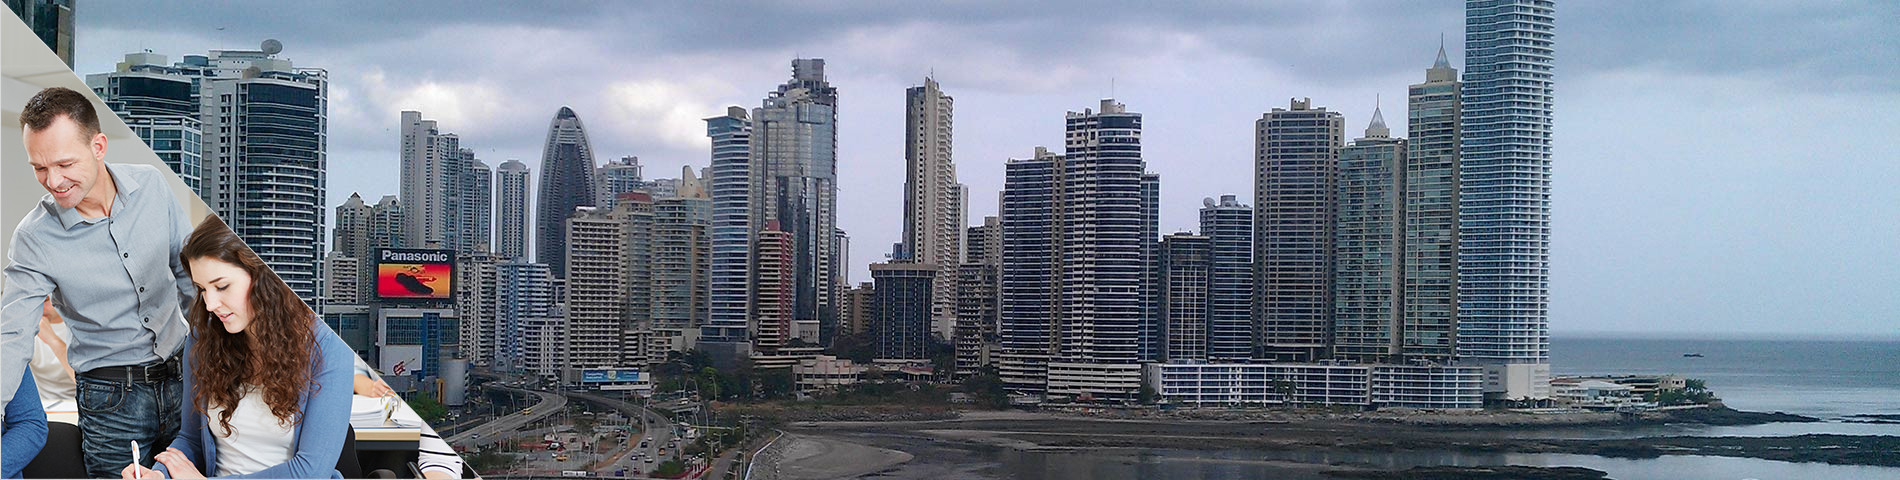 Panama City - Combi: Groupe + particuliers